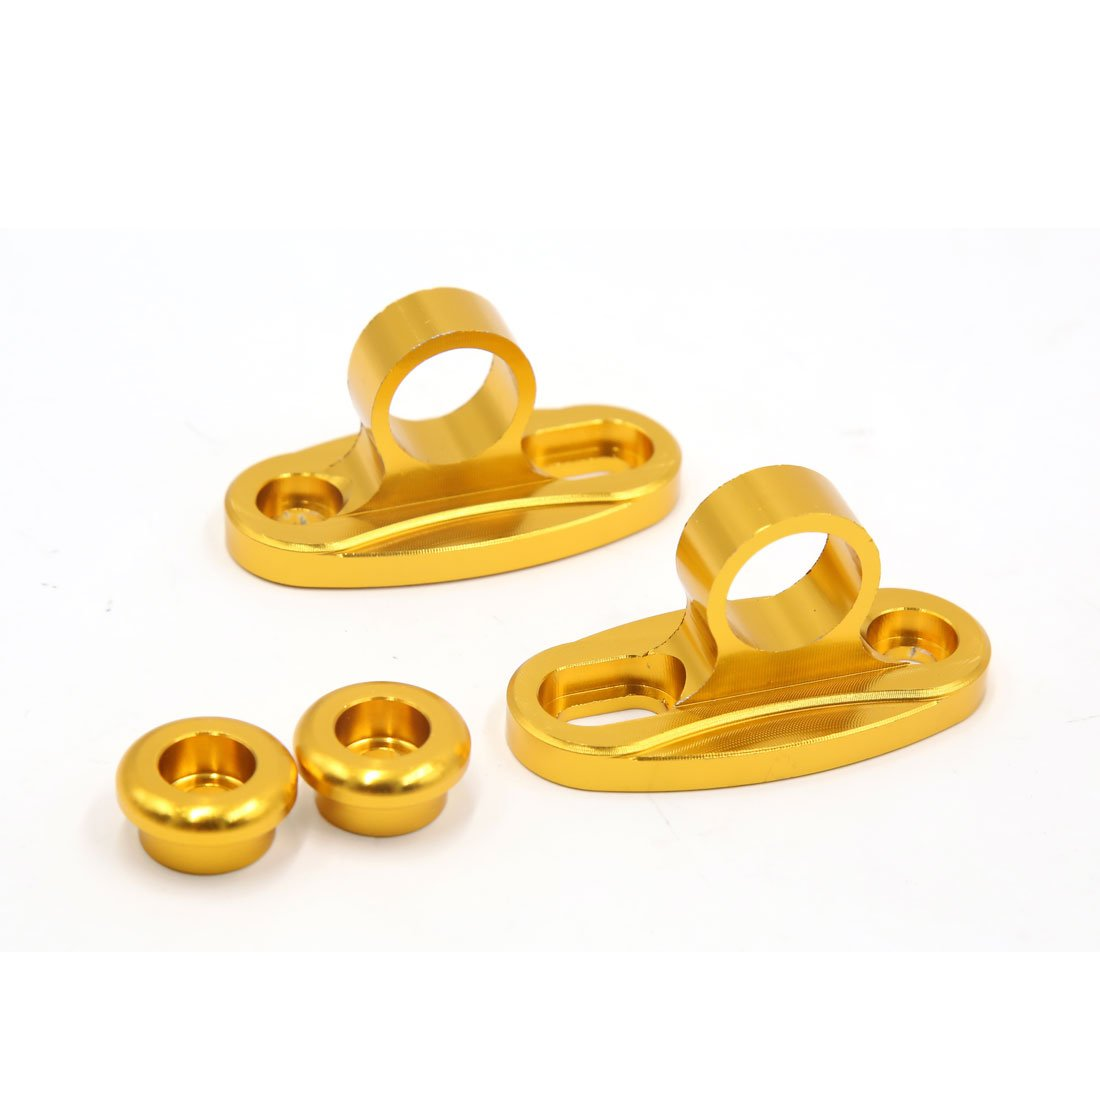 uxcell 2pcs Gold Tone Aluminum Alloy Motorcycle Rearview Mirror Fairing Adapter Bracket